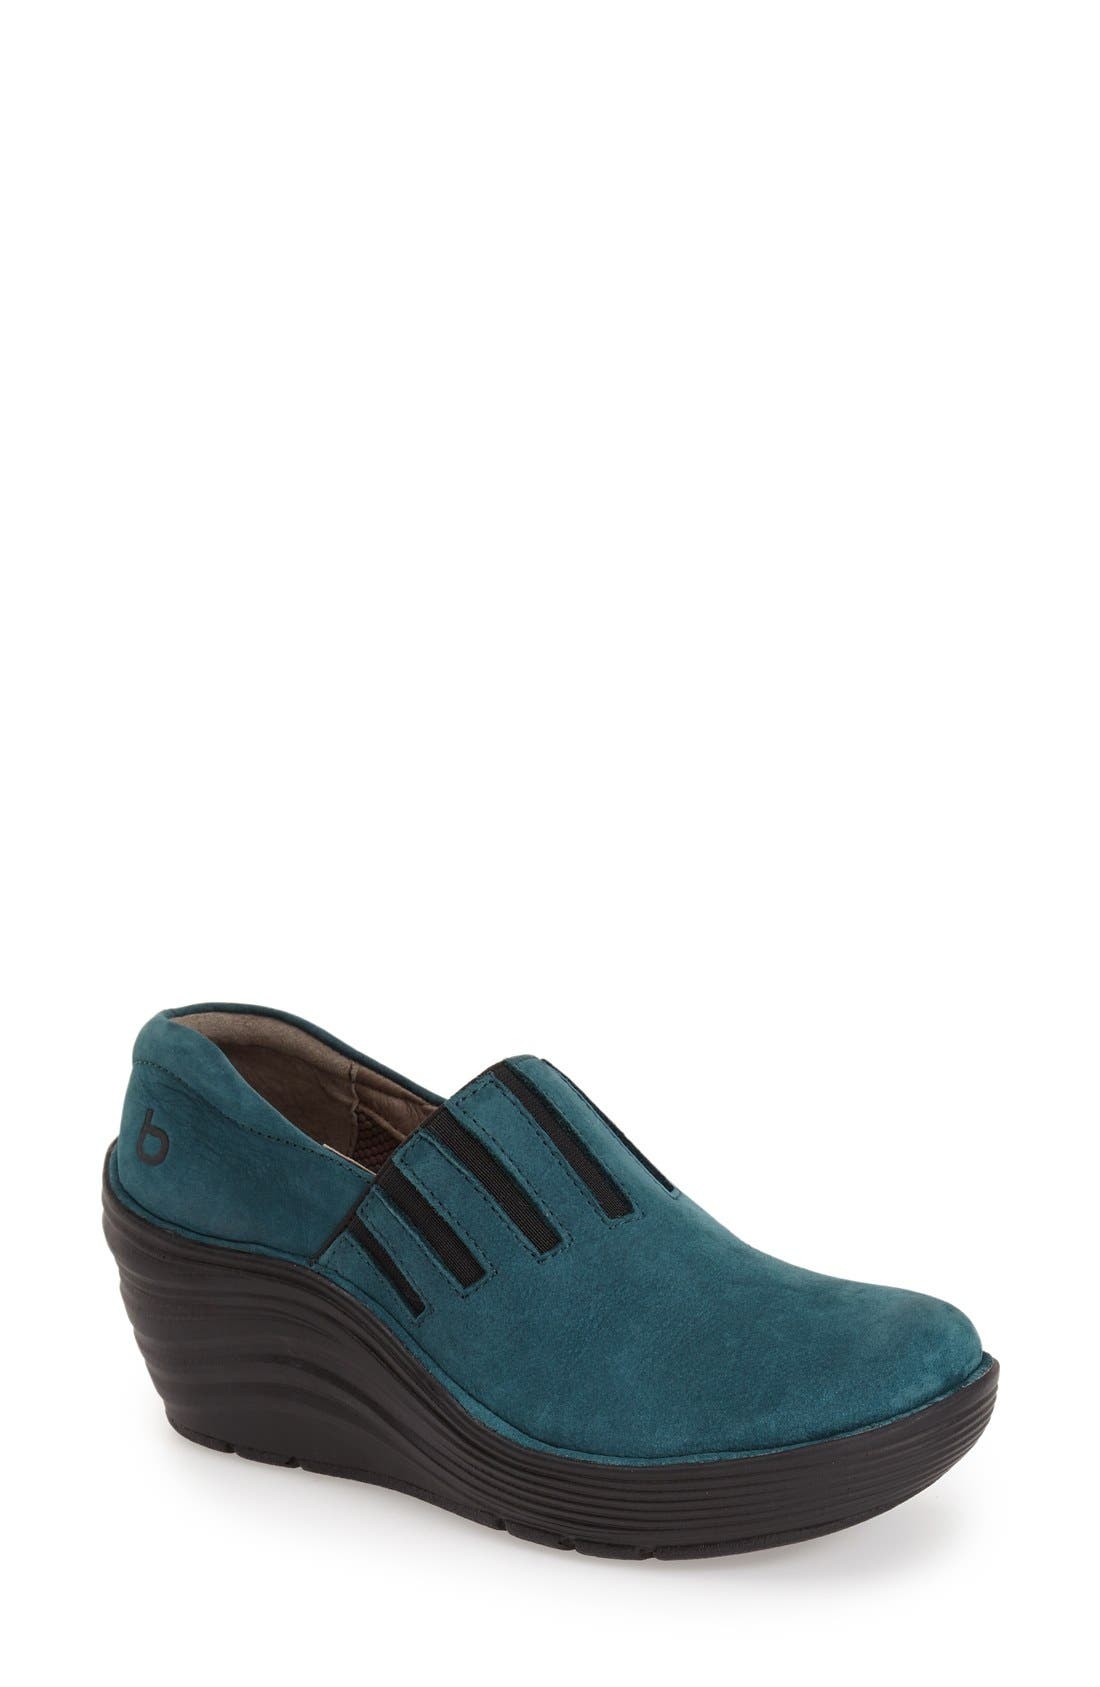 Alternate Image 1 Selected - bionica 'Coast' Clog (Women)